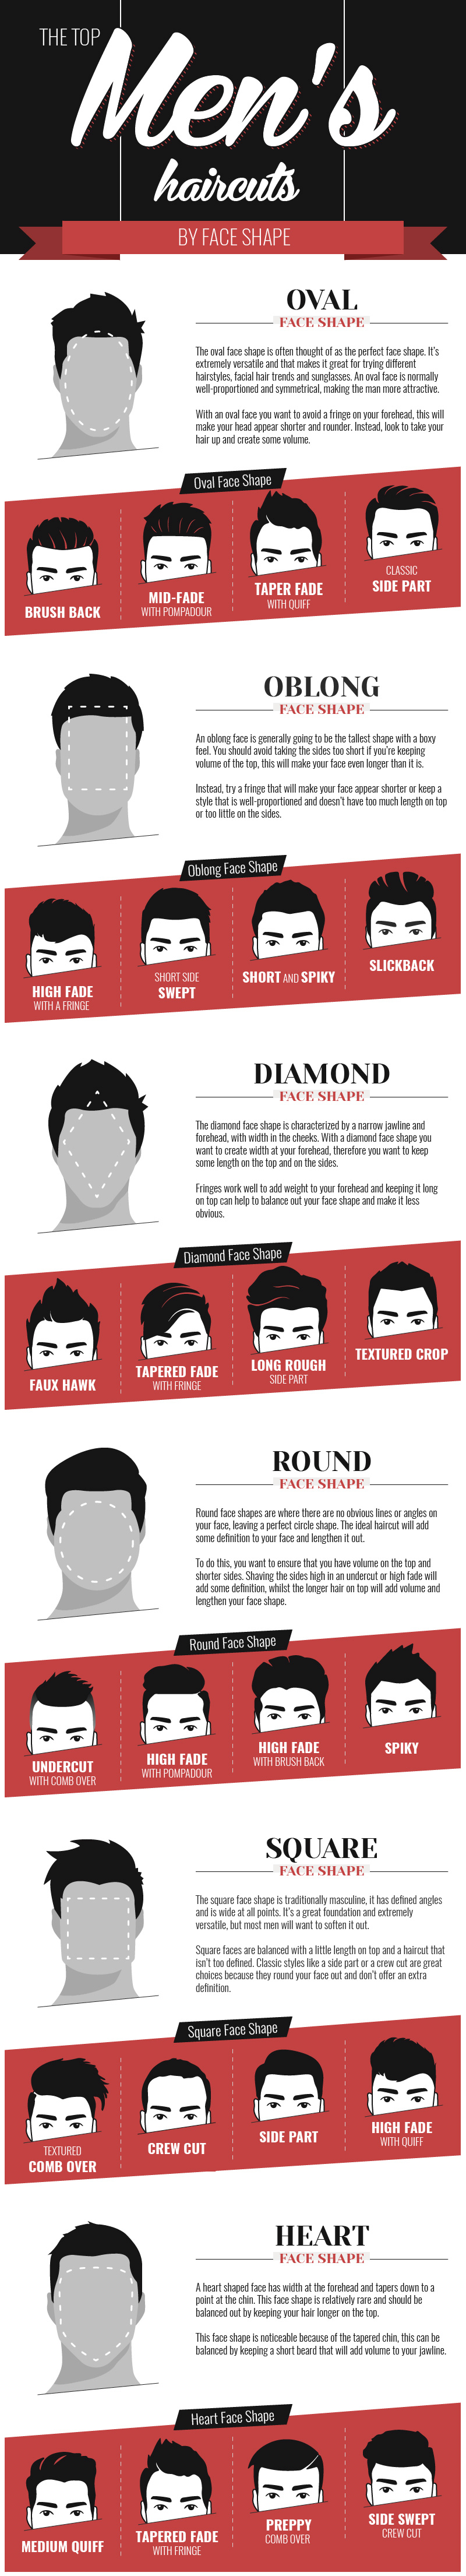 top men's haircuts by face shape infographic